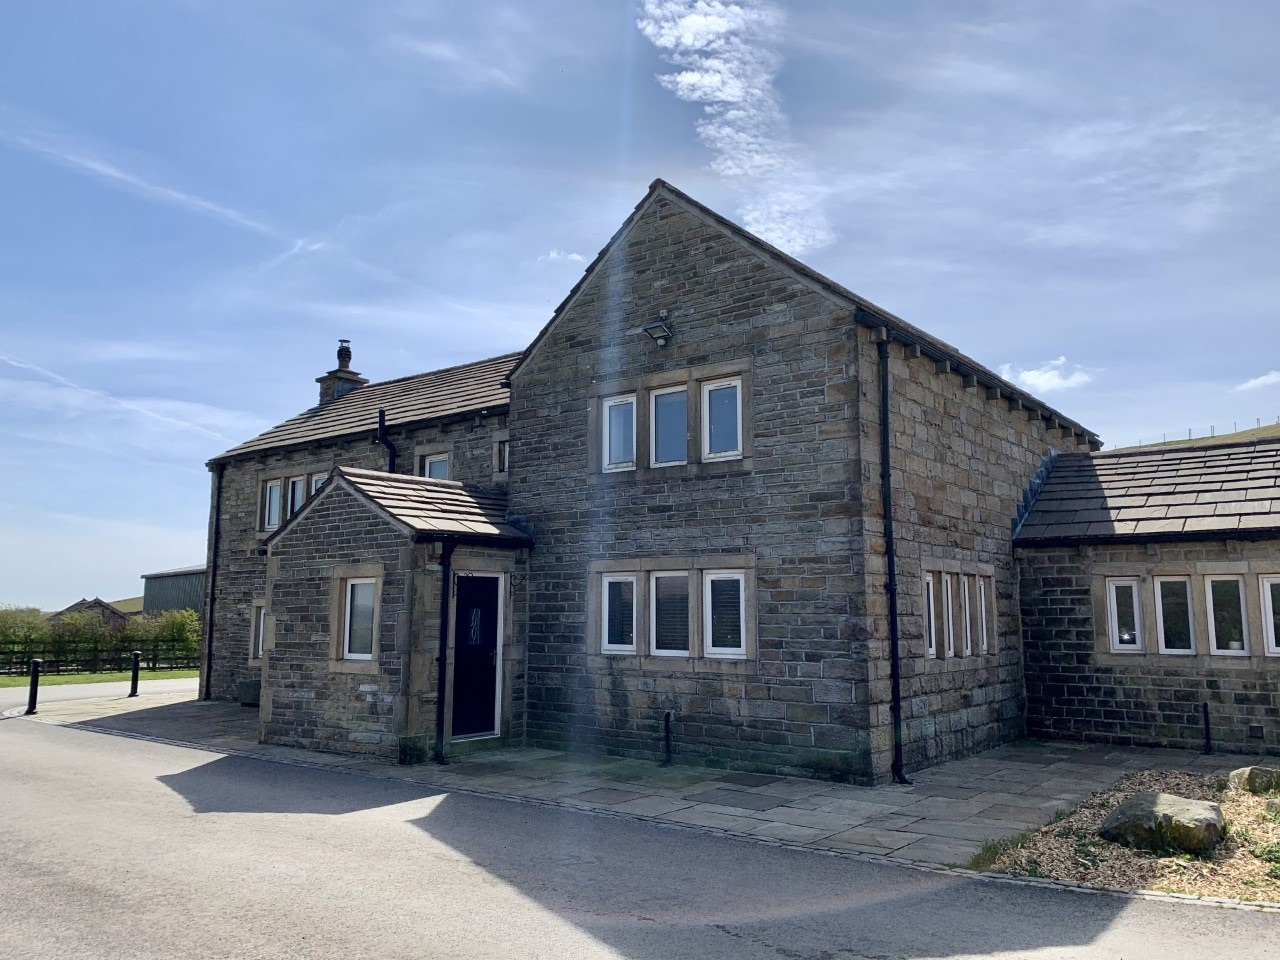 3 bedroom detached house For Sale in Todmorden - Photograph 7.